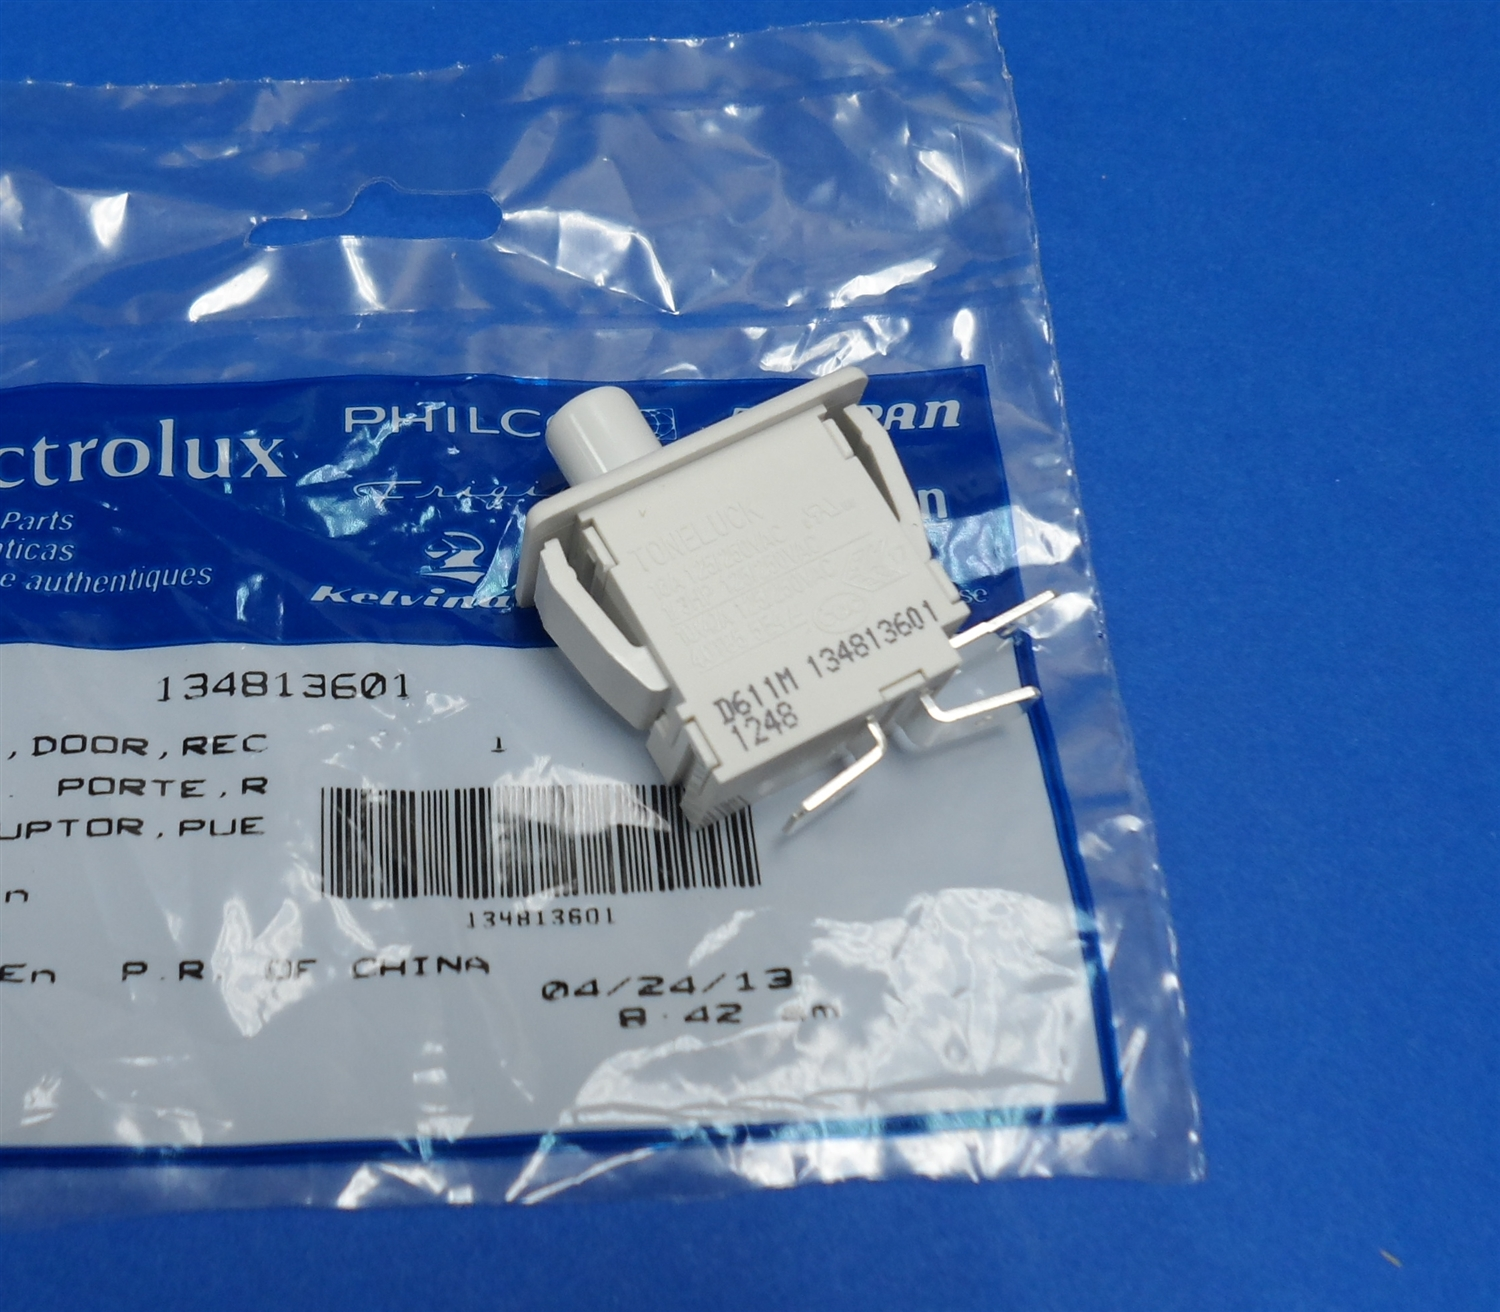 Electrolux Frigidaire 134813601 Dryer Door Switch at Sears.com